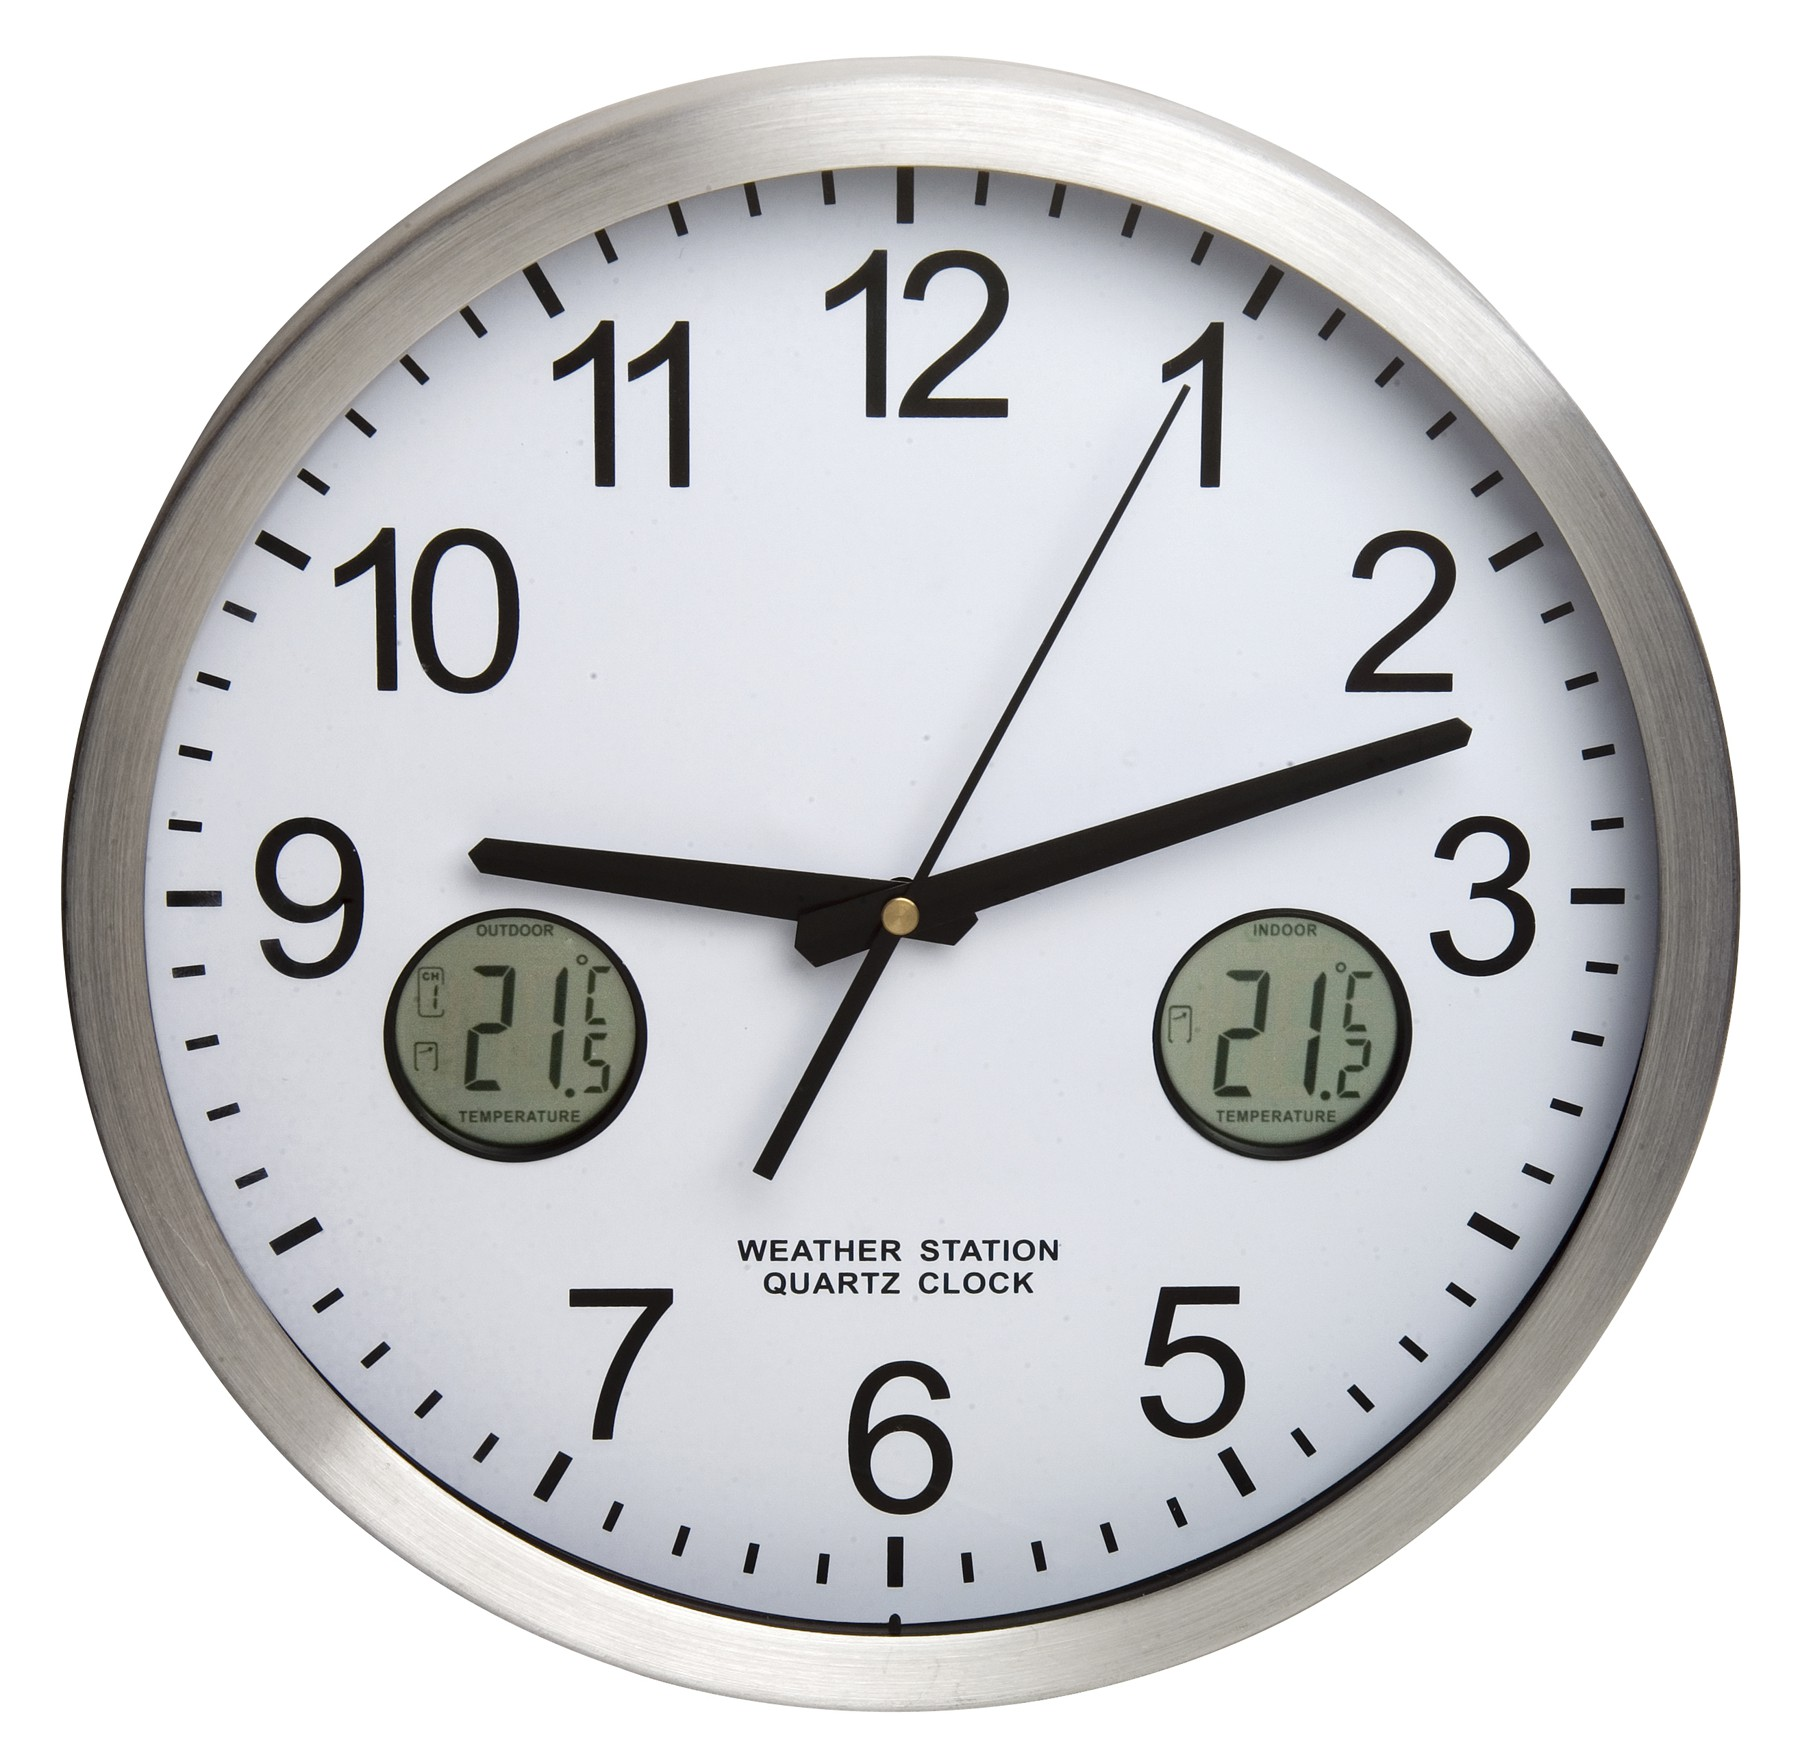 H-B DURAC Multi-Function Analog Clock with Indoor/Outdoor ...